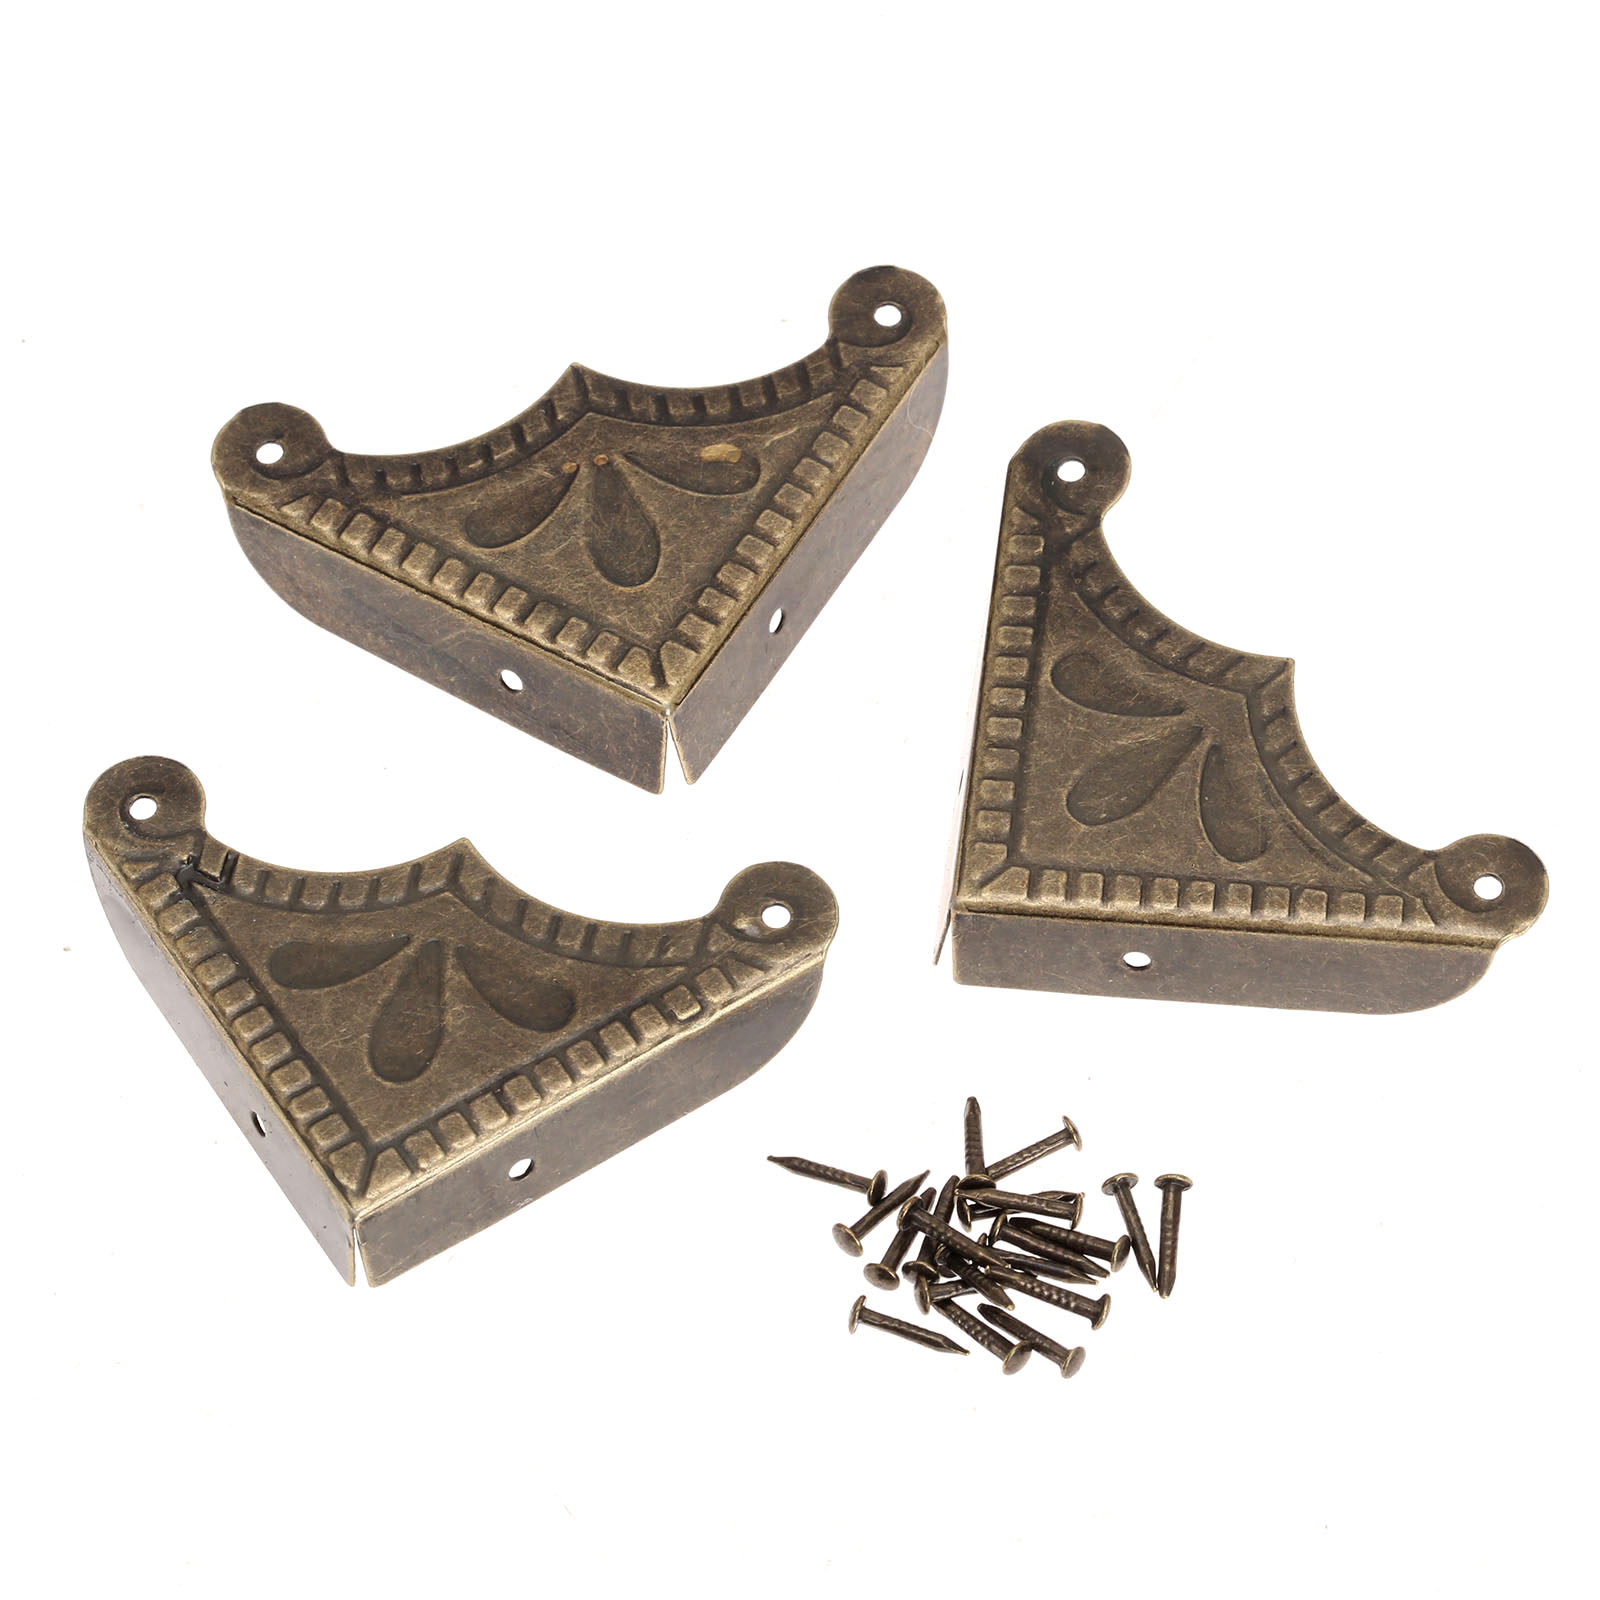 12Pcs Decorative Corner Brackets for Scrapbook Wooden Box Edge Cover Protector Guard Antique Chinese Crafts w/Nail